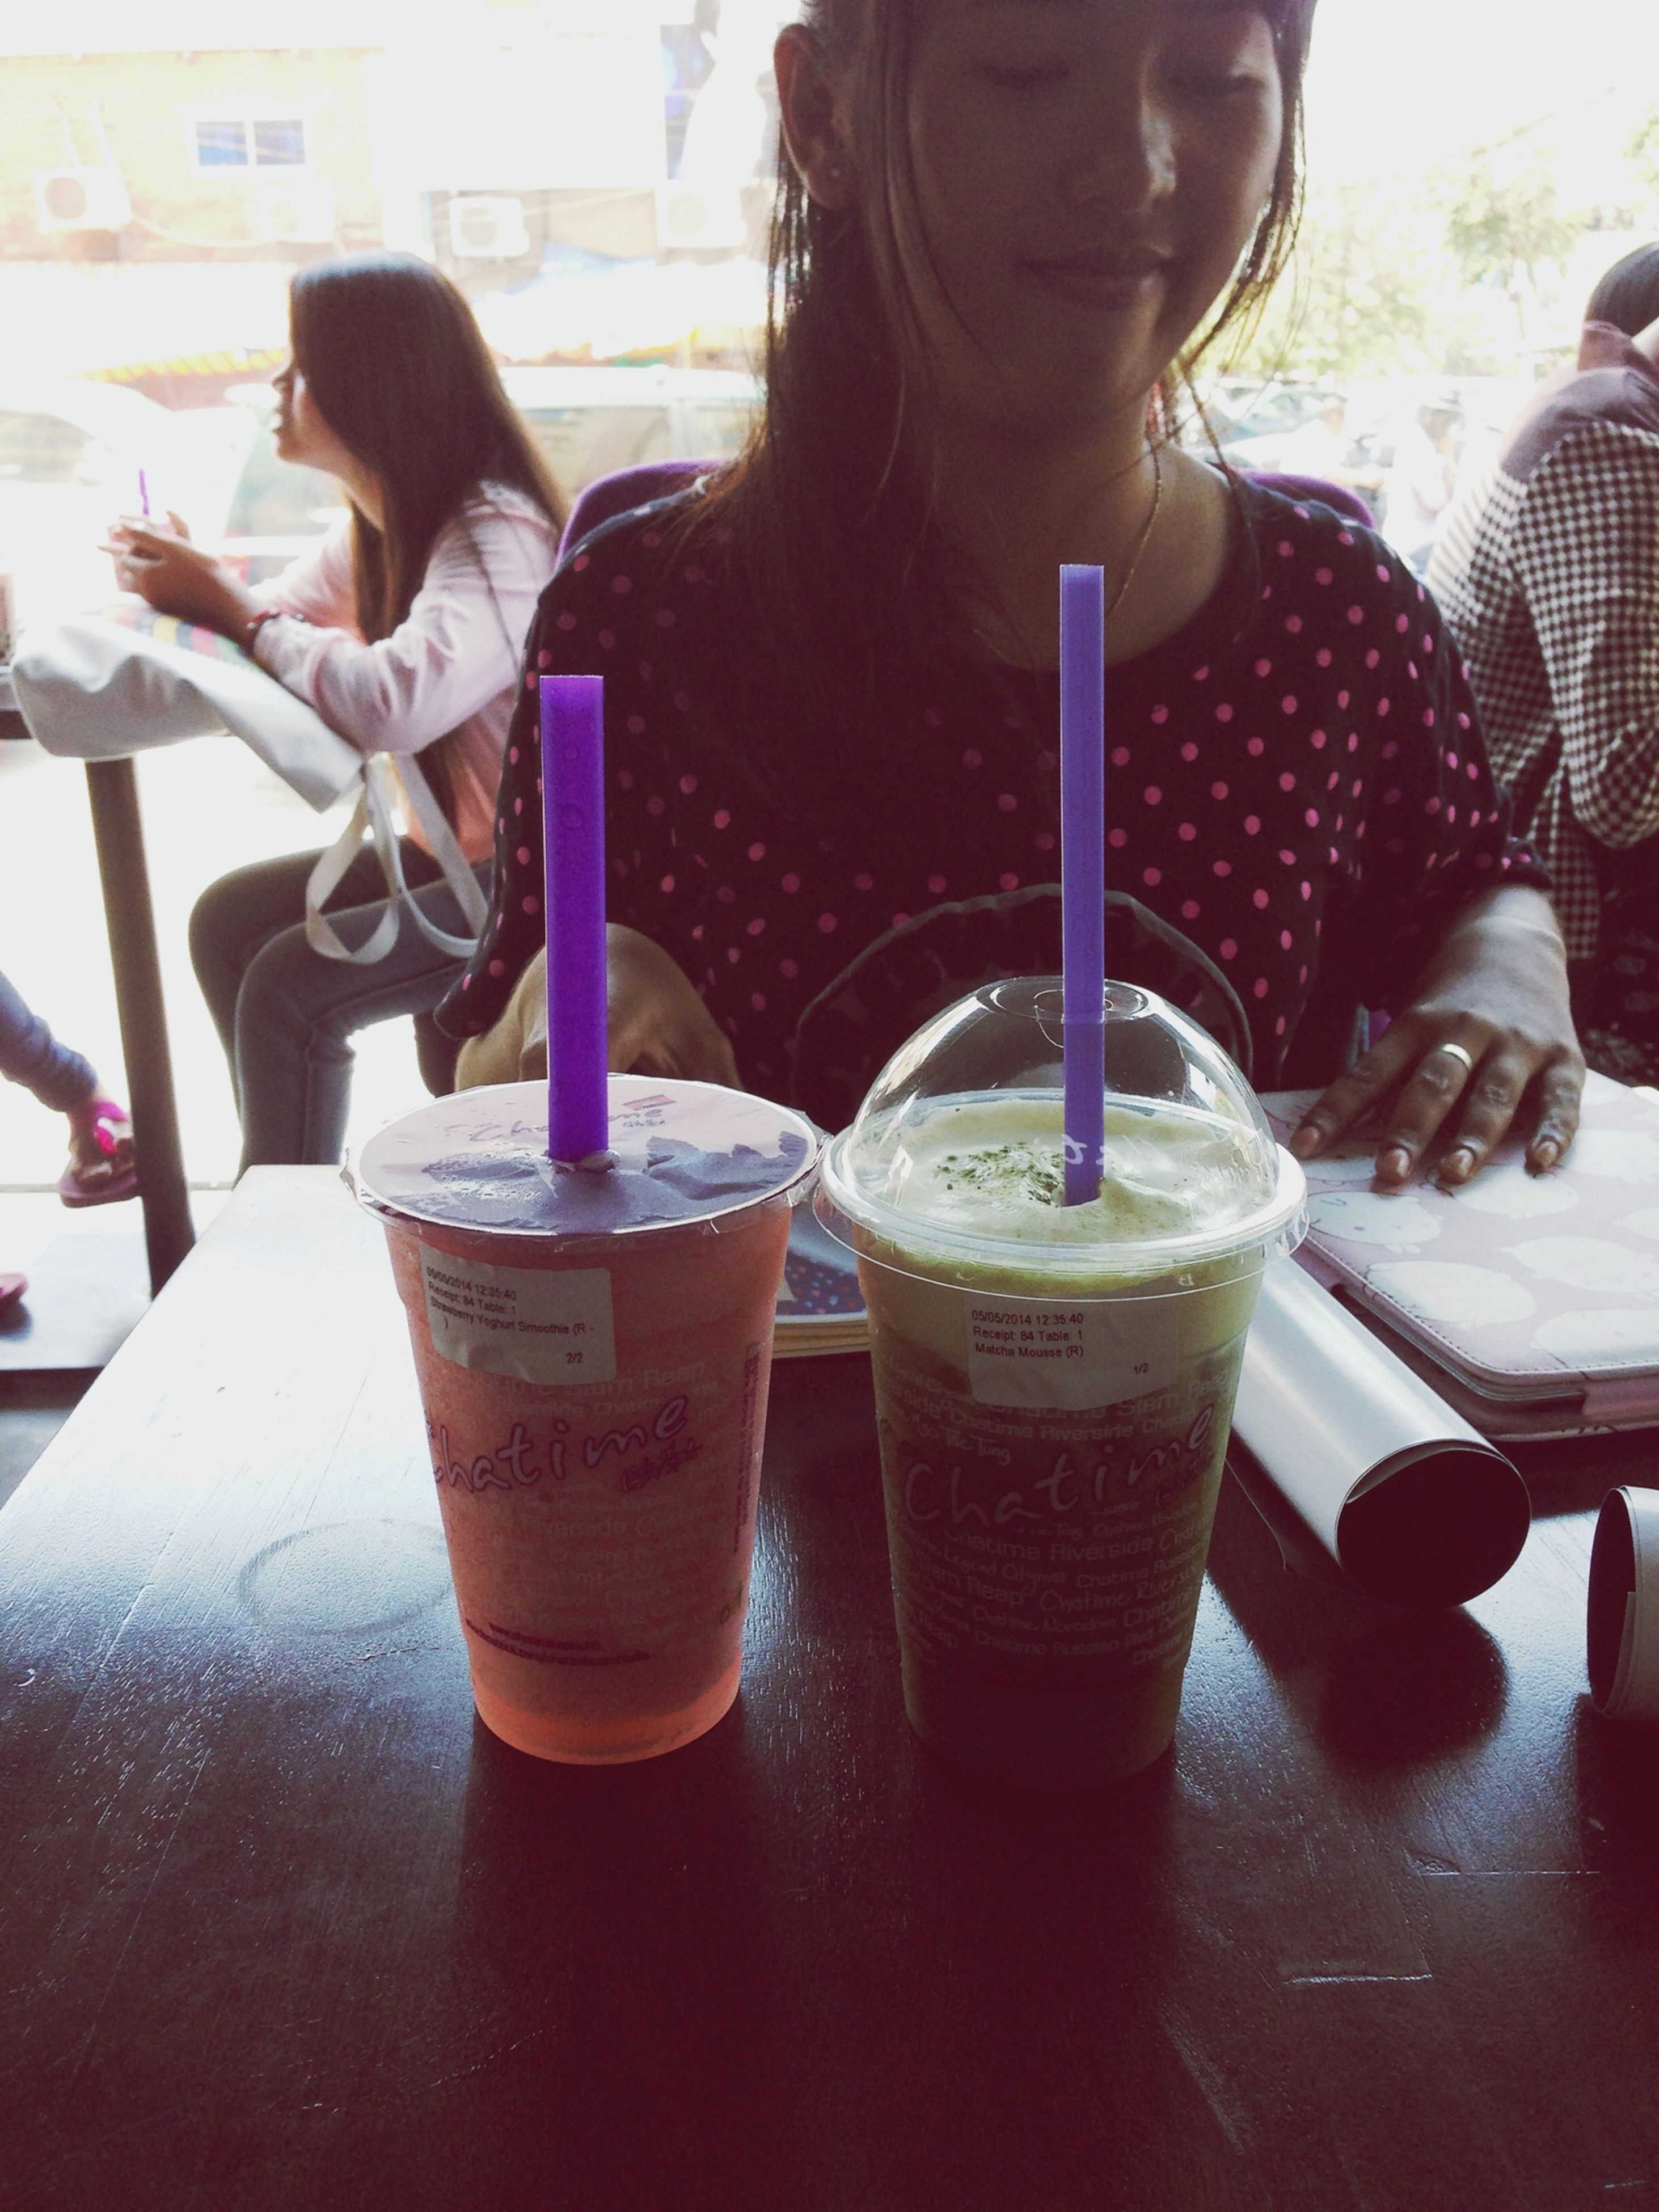 food and drink, drink, refreshment, table, freshness, lifestyles, drinking glass, leisure activity, indoors, coffee - drink, restaurant, drinking straw, coffee cup, person, holding, focus on foreground, incidental people, close-up